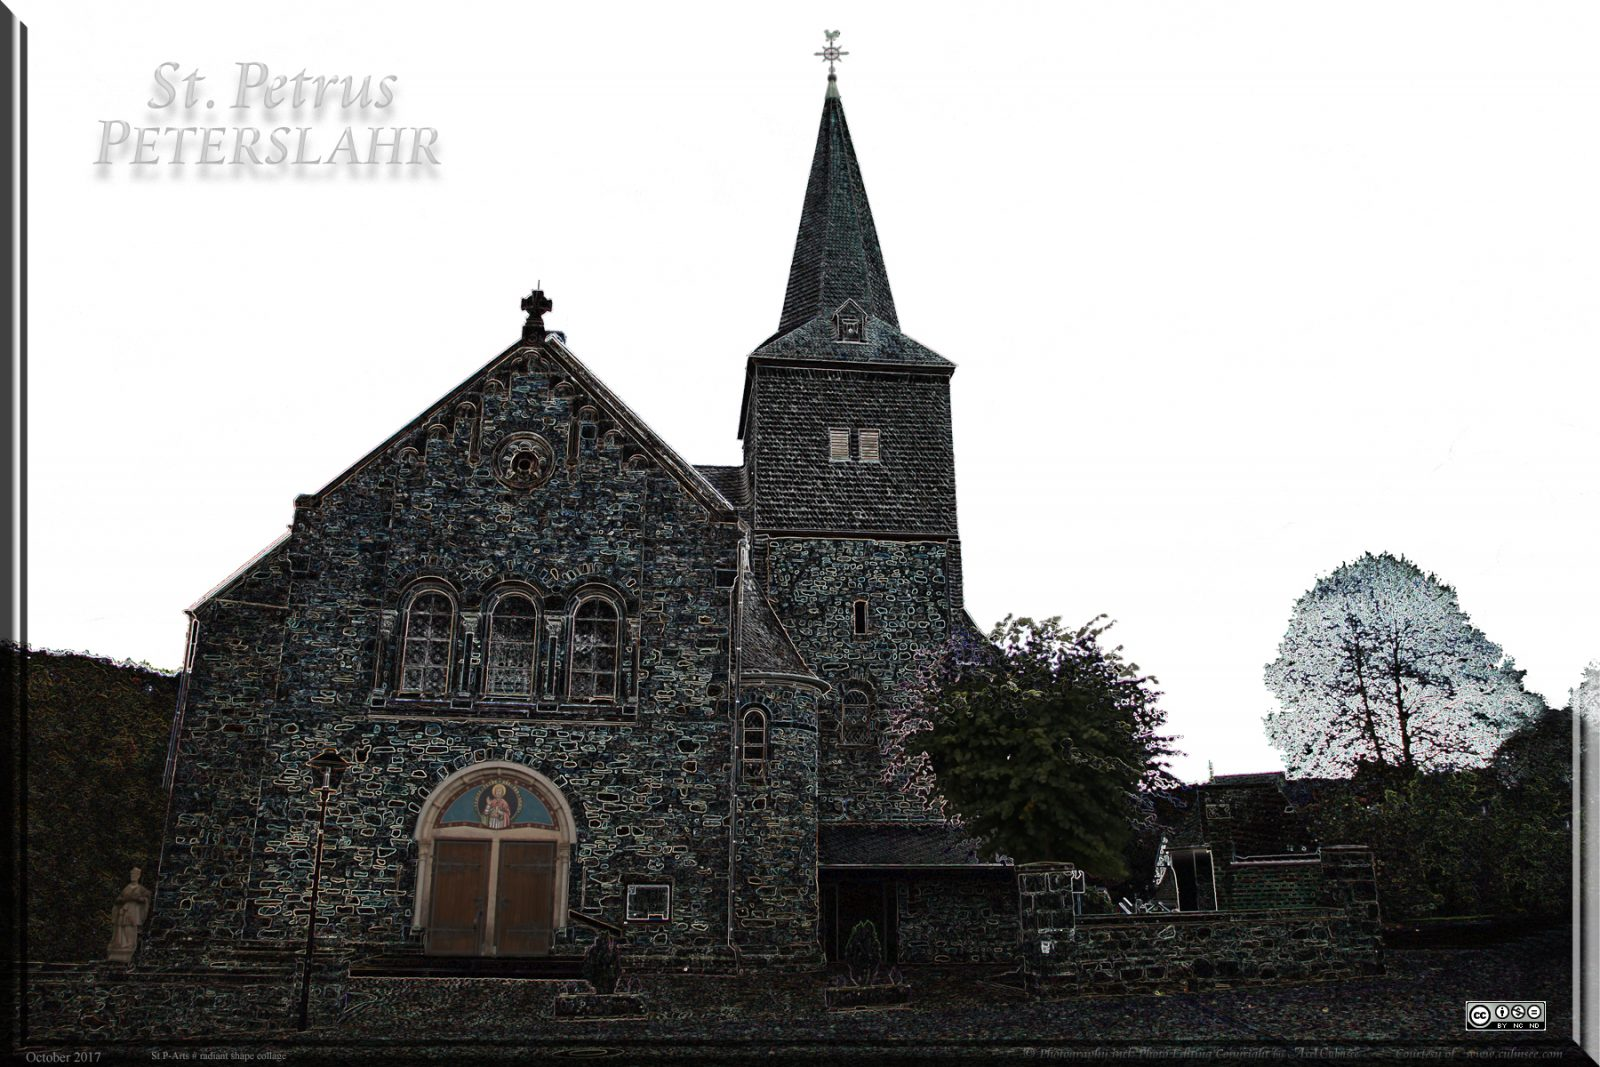 Peterslahr Kirche St. Petrus Photo Editing by Axel Culmsee